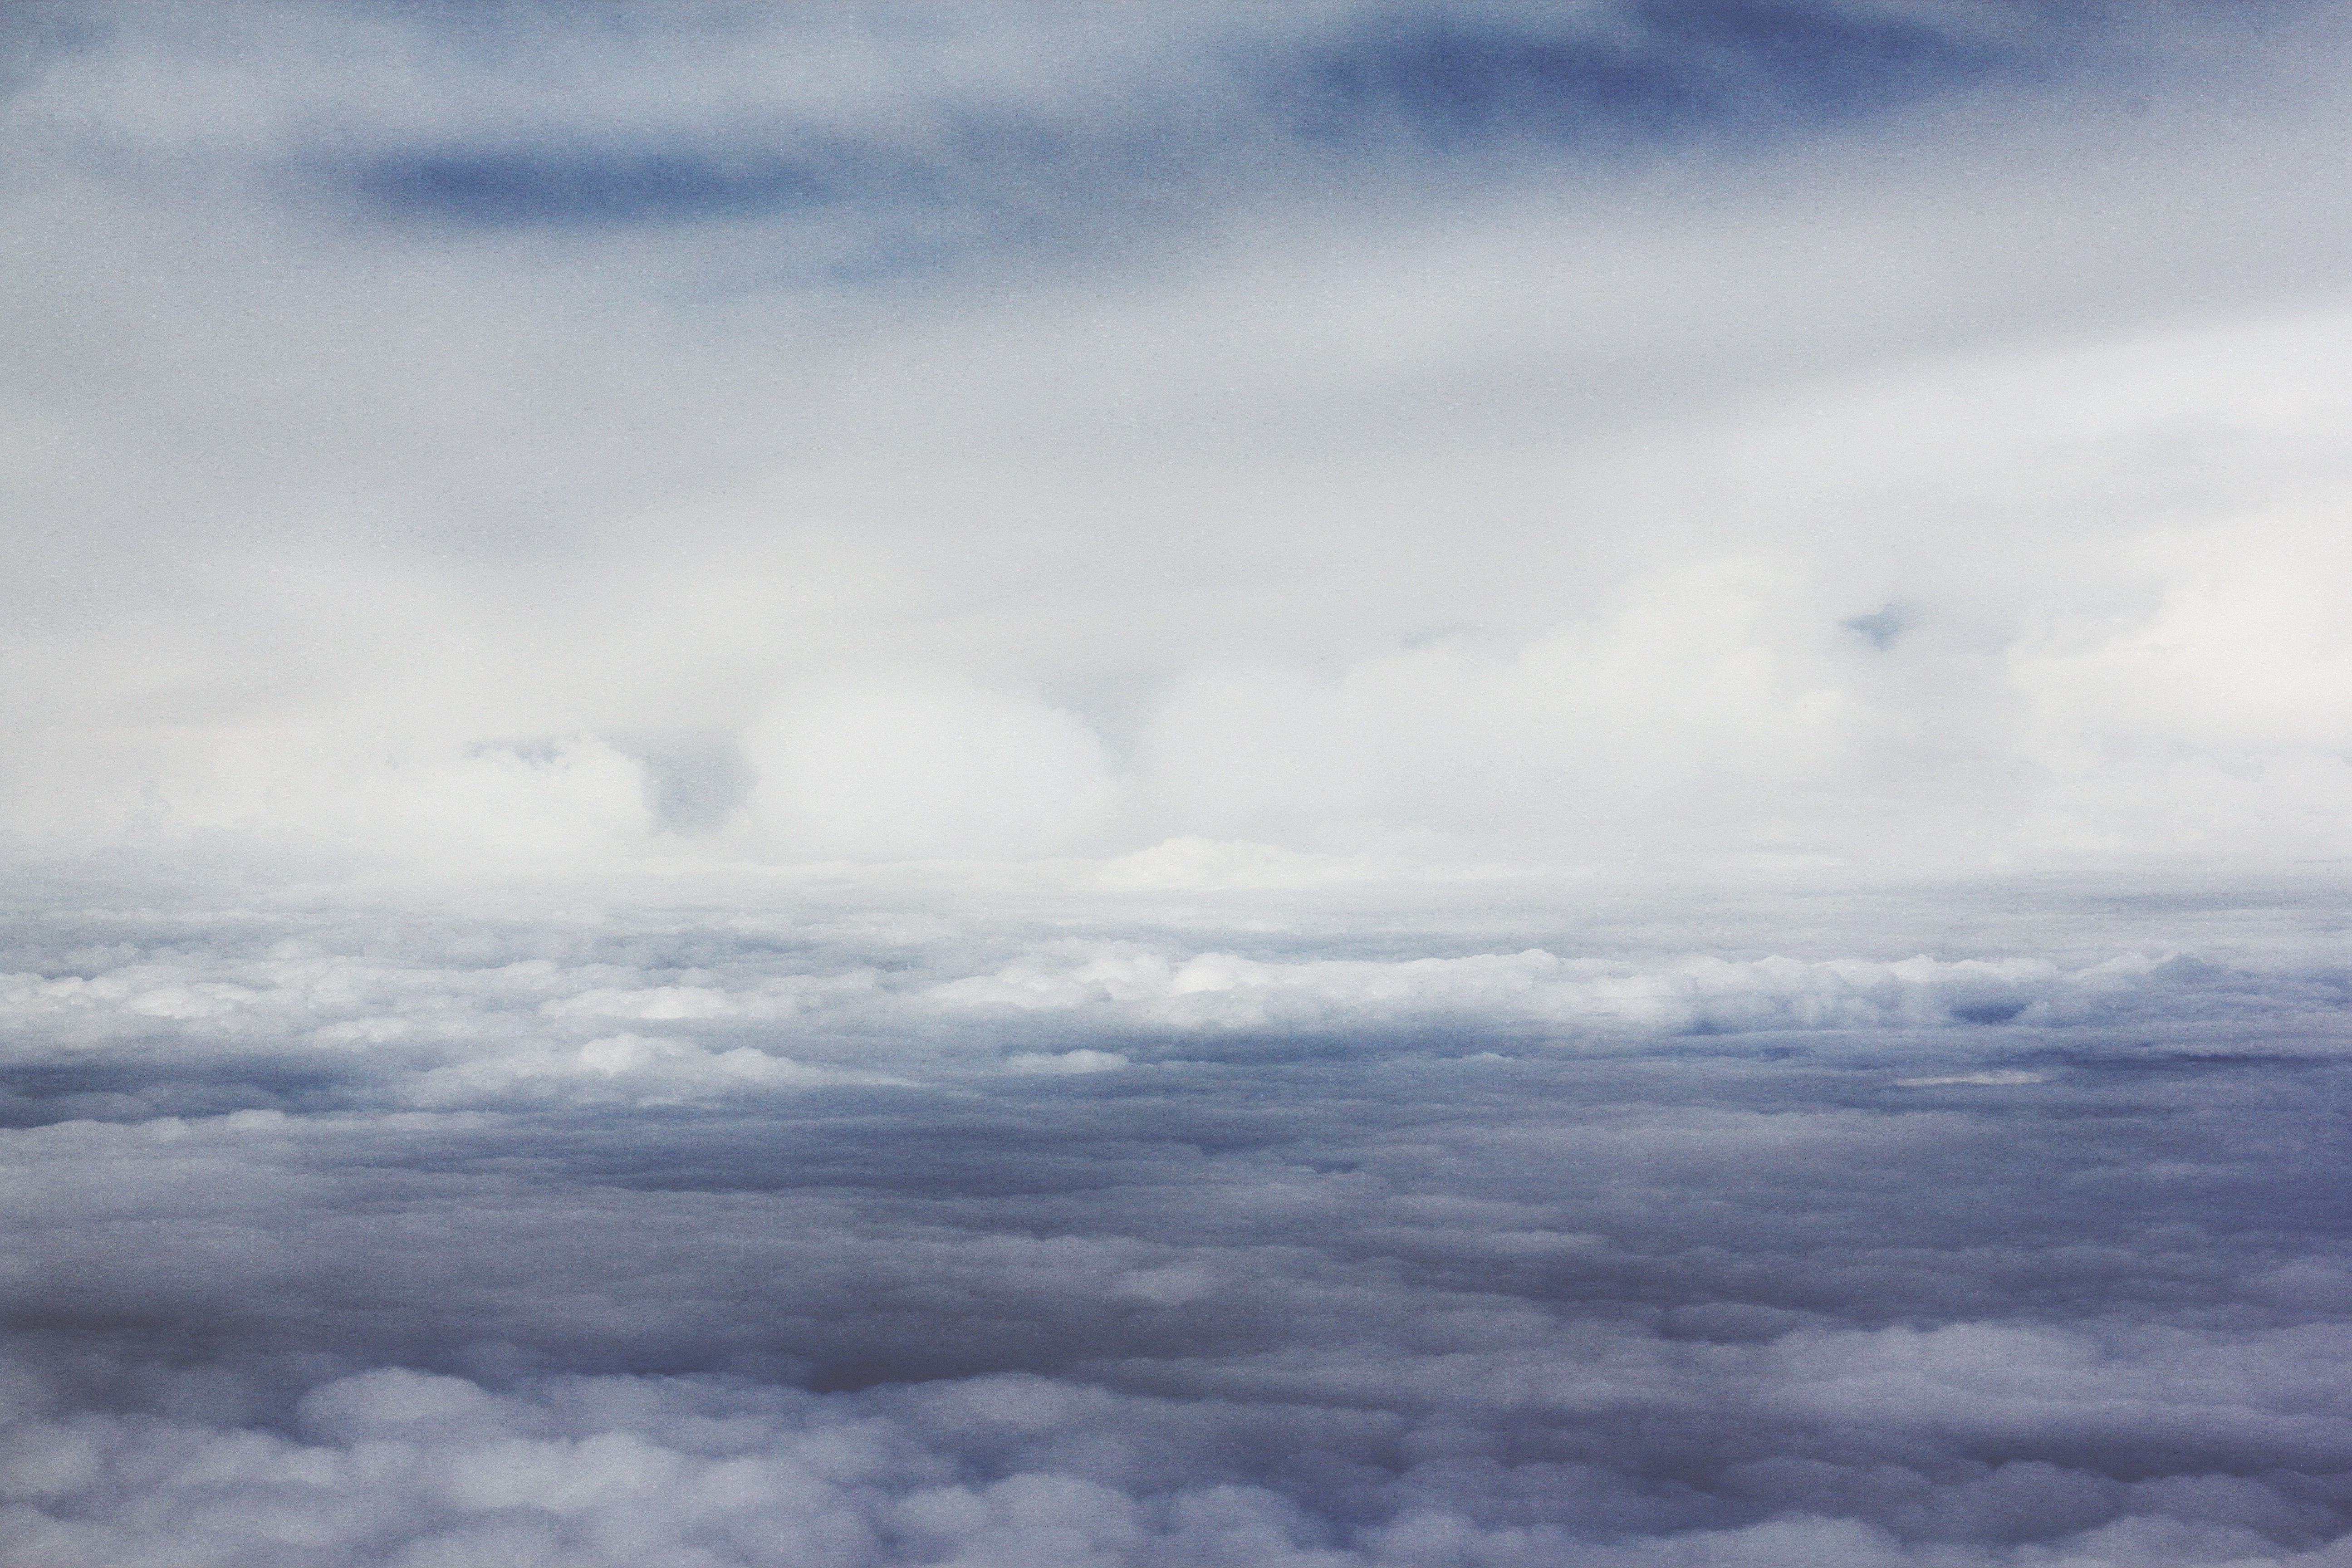 bird's-eye view of white clouds